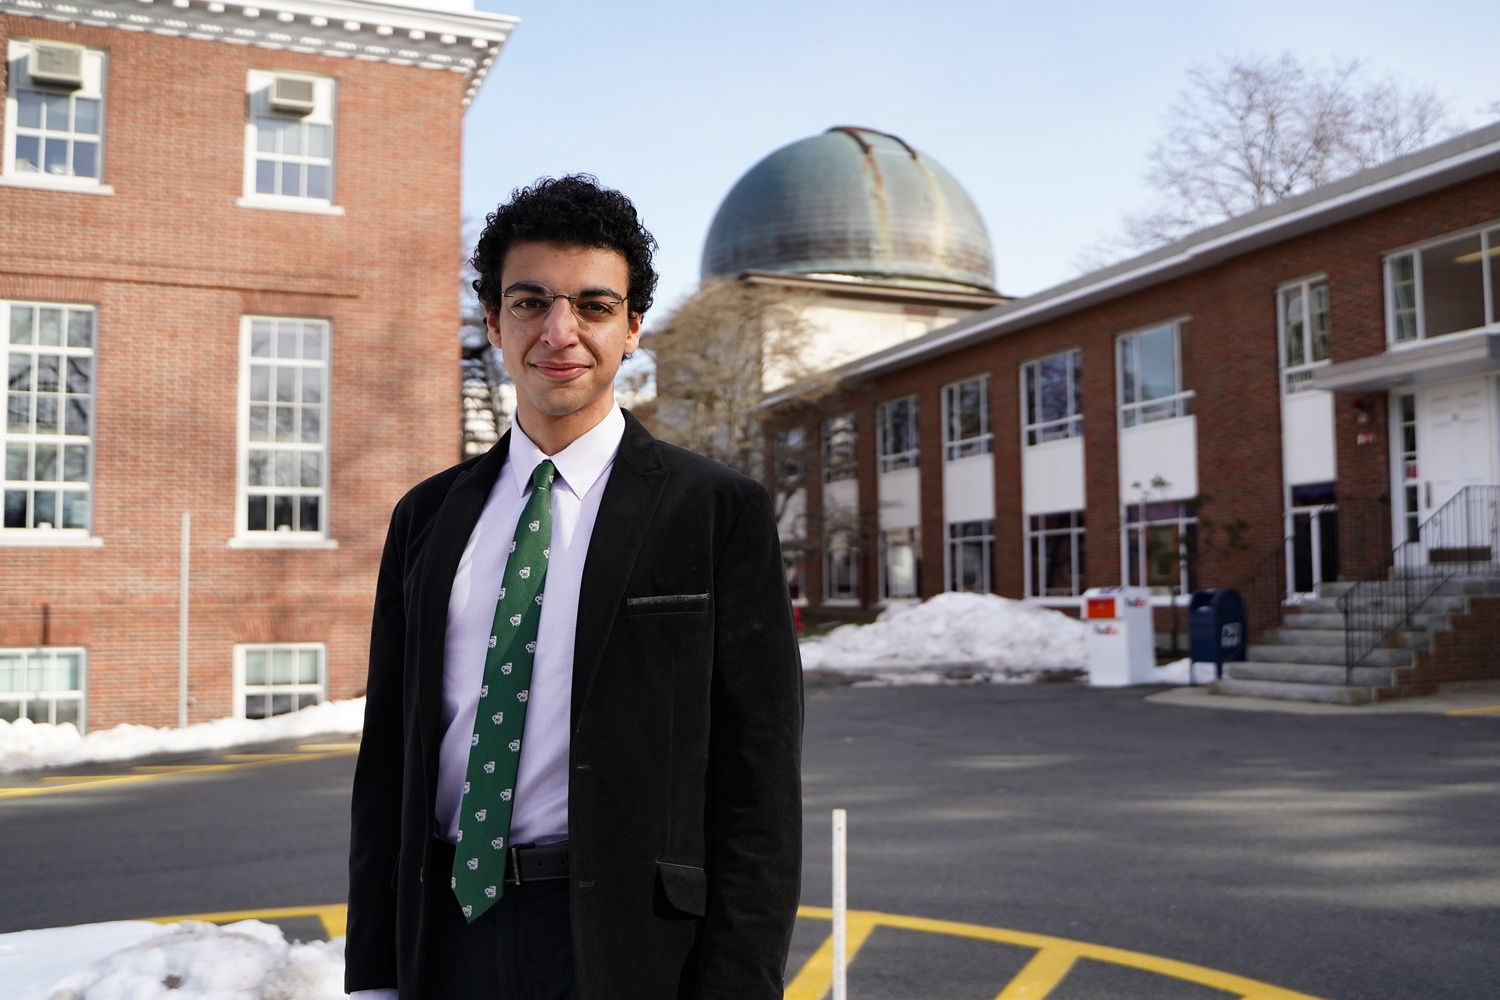 Astrophysics student Amir Siraj '21 and Astronomy professor Abraham Avi Loeb proposed a new model showing that the Chicxulub impactor could have been of cometary, rather than asteroidal origin.